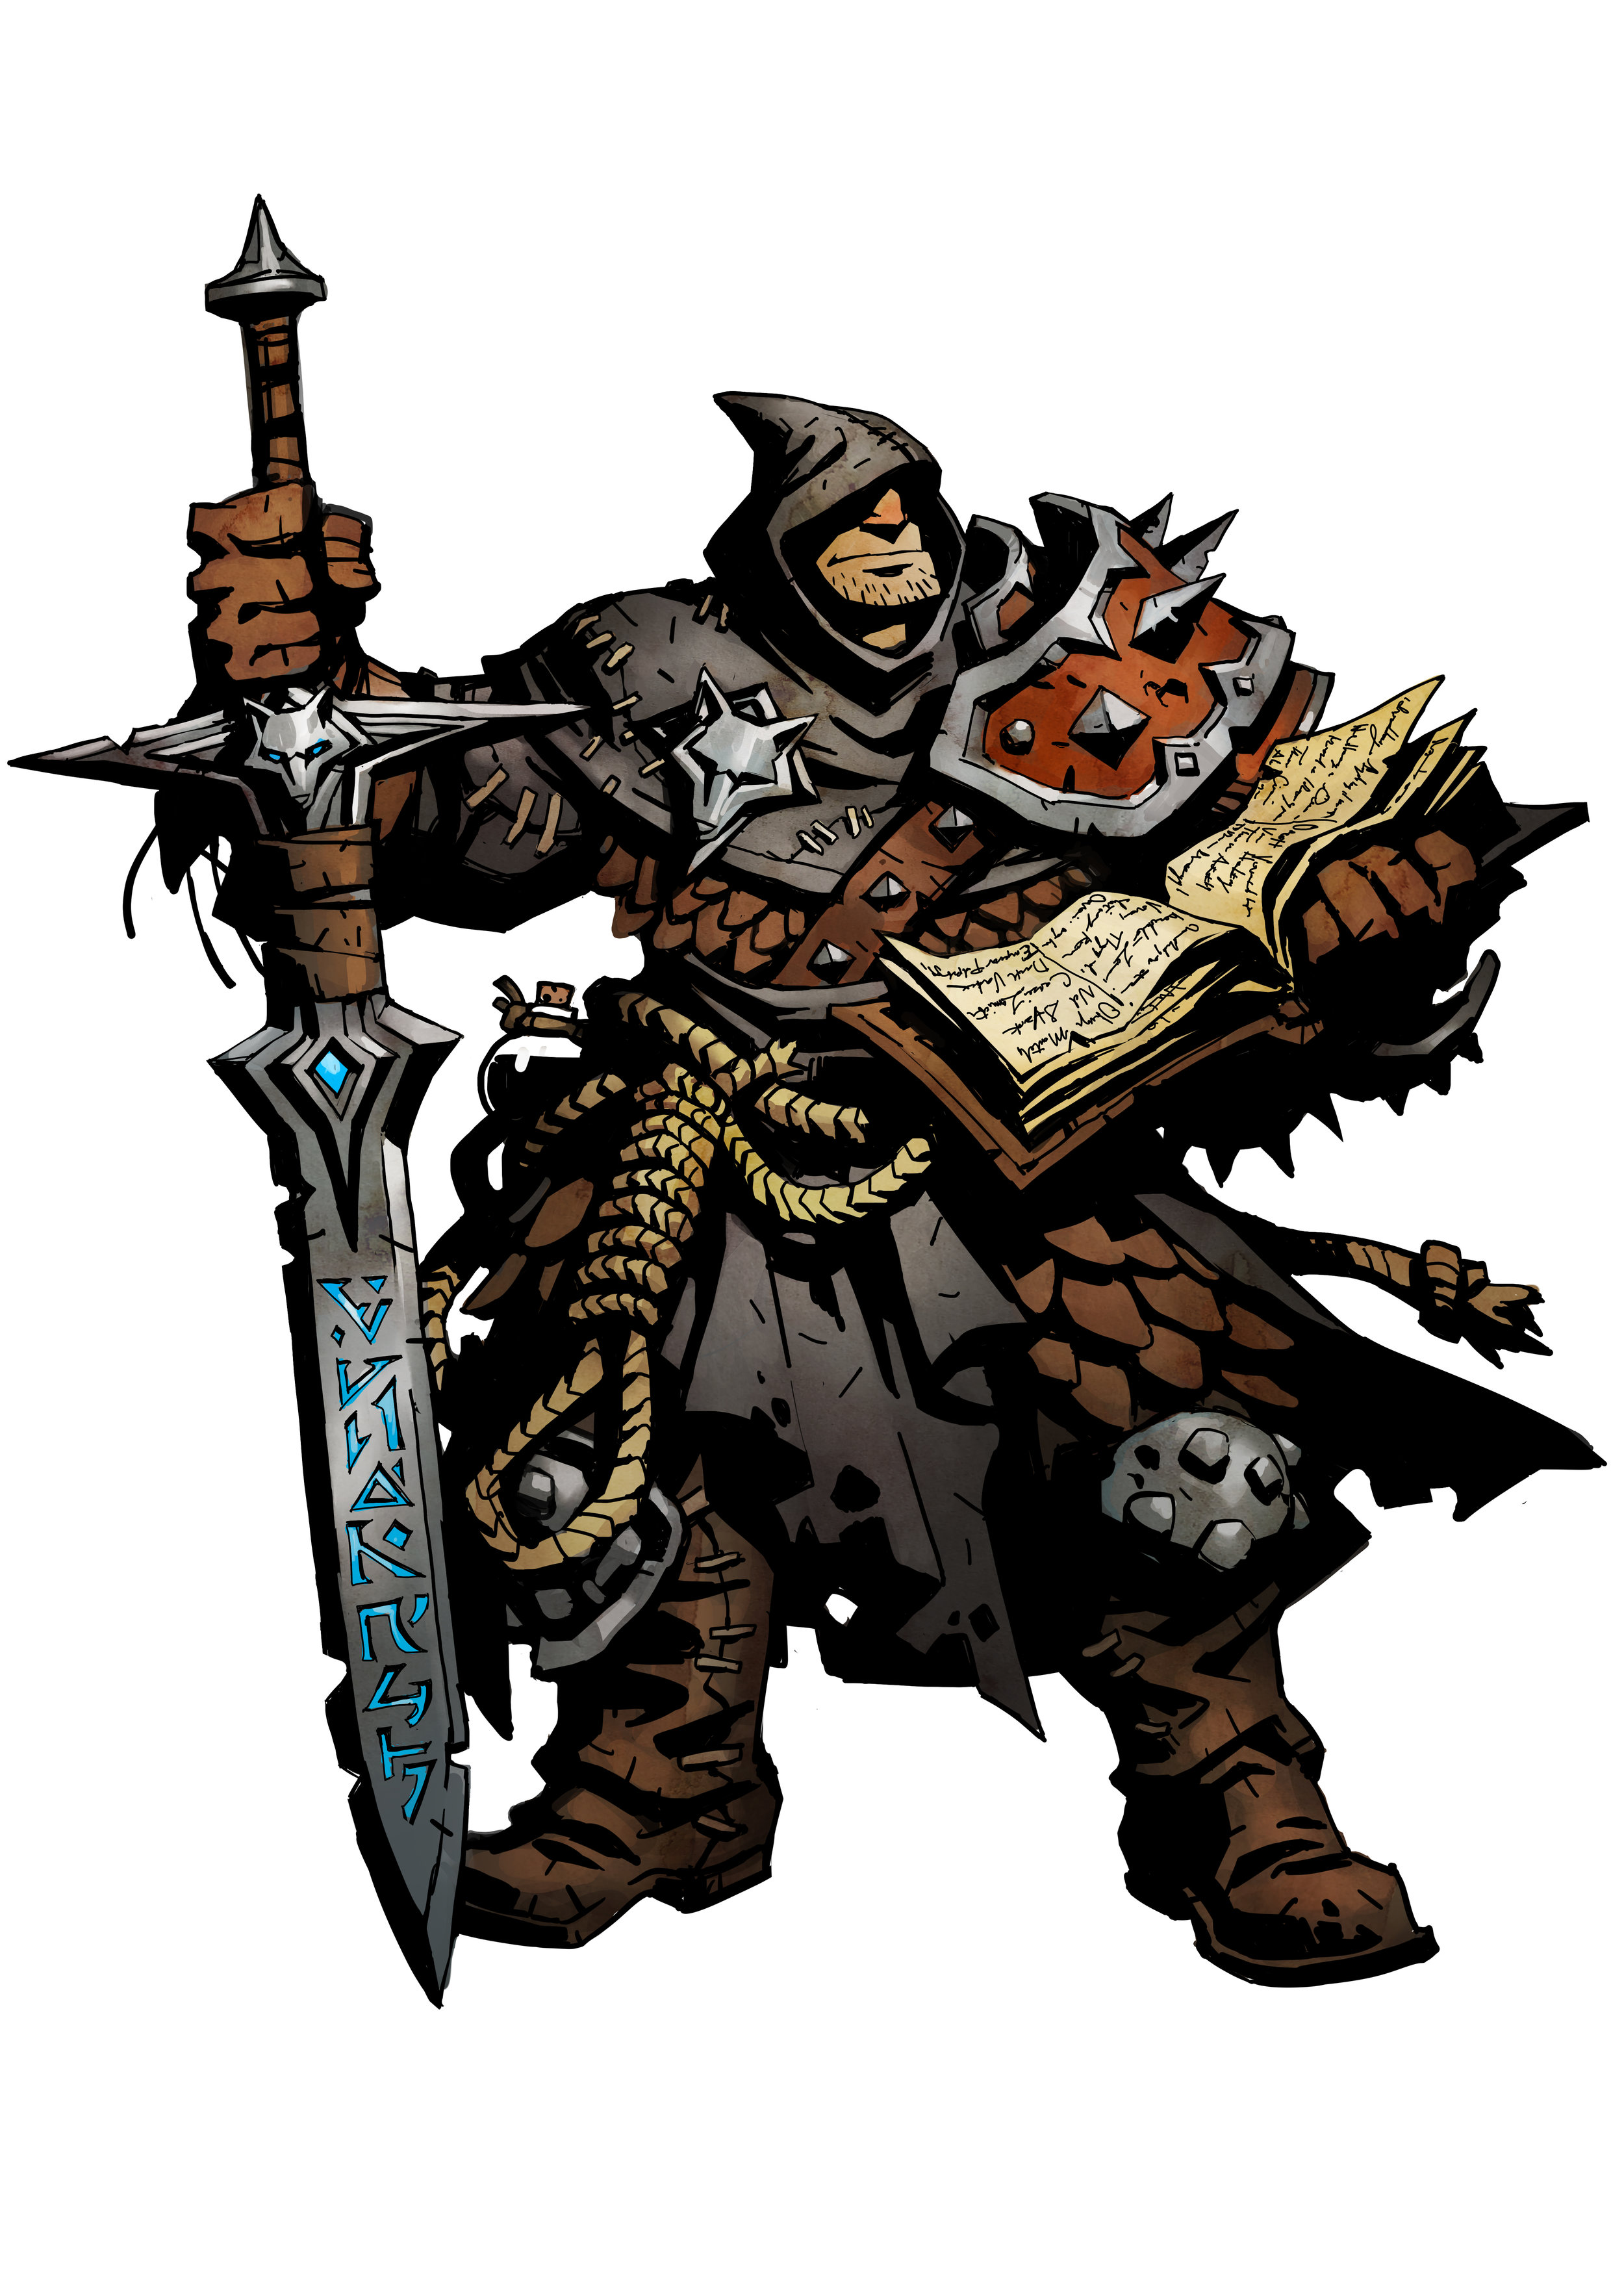 RIGHTEOUS EXECUTIONER FAQ - Q: If I am hanged, how do I break free?A: Player must spend one movement speed from a movement action to cut themselves from the noose. While hanged, they cannot move or attack. If they don't free themselves from the noose, they will take a damage at the end of their turn.Q: What happens when I bury someone that is hanged by the Executioner?A: They are broken from the noose and are now buried.